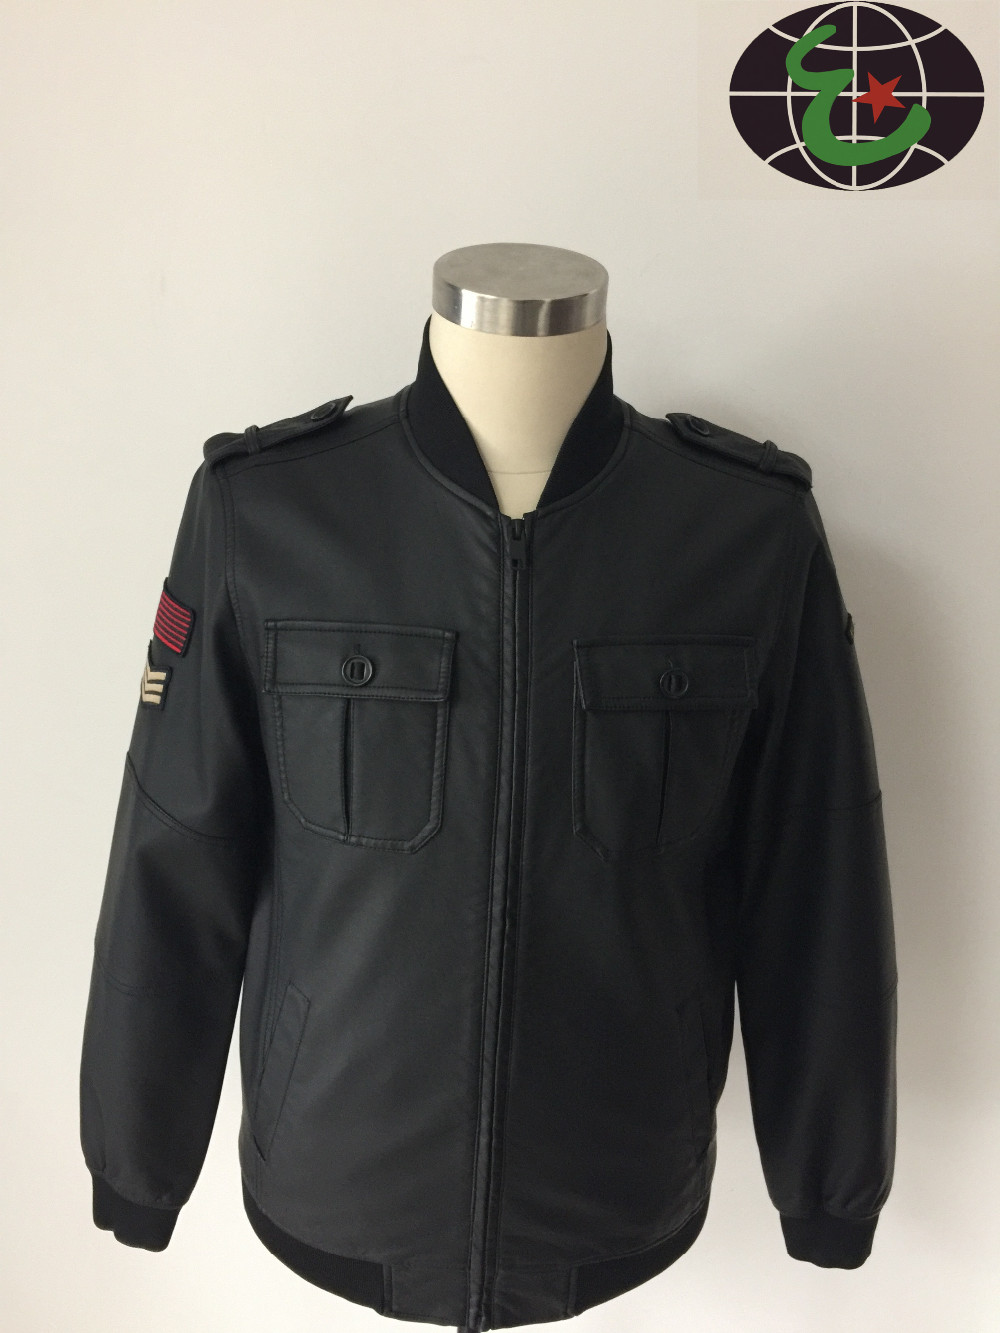 Trendy Style Mens Army Jacket With Sleeve Badge